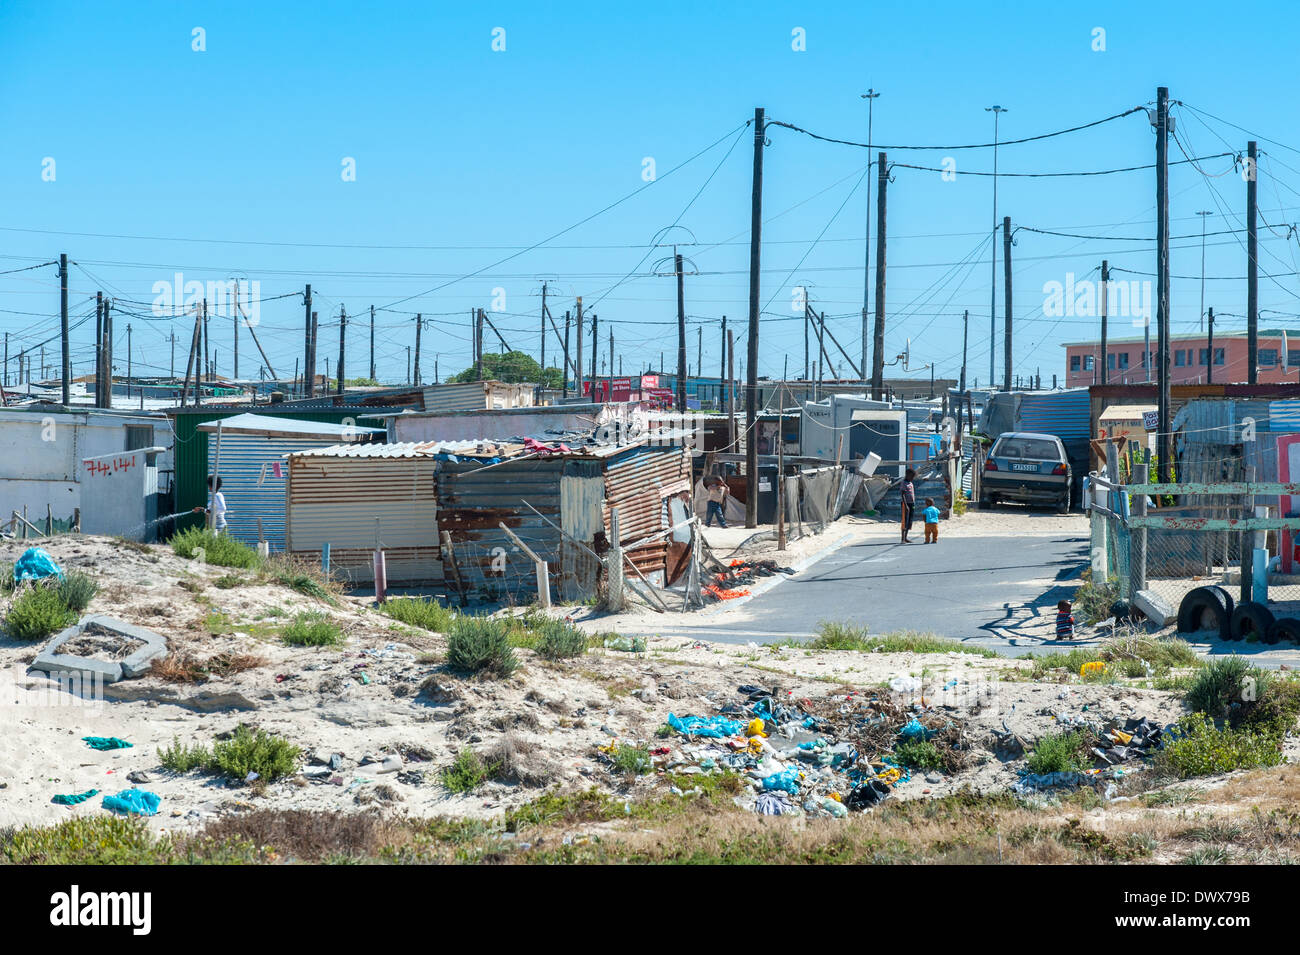 Street ending at a rubbish dump, Khayelitsha, Cape Town, Western Cape, South Africa - Stock Image